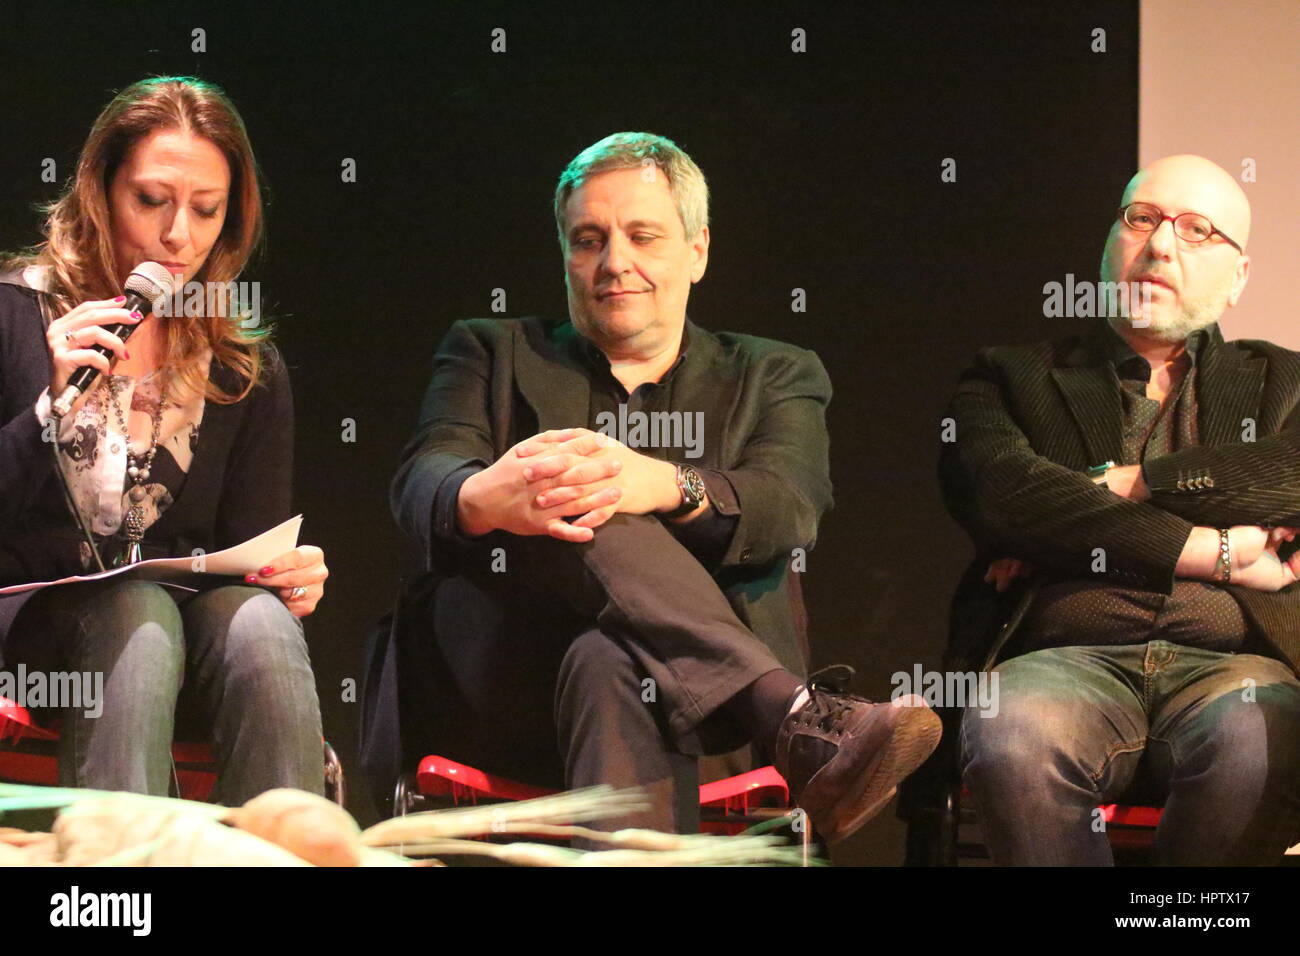 Succivo, Italy. 23rd Feb, 2017. Presentation of the last novel of the writer Maurizio De Giovanni 'Pane per - Stock Image